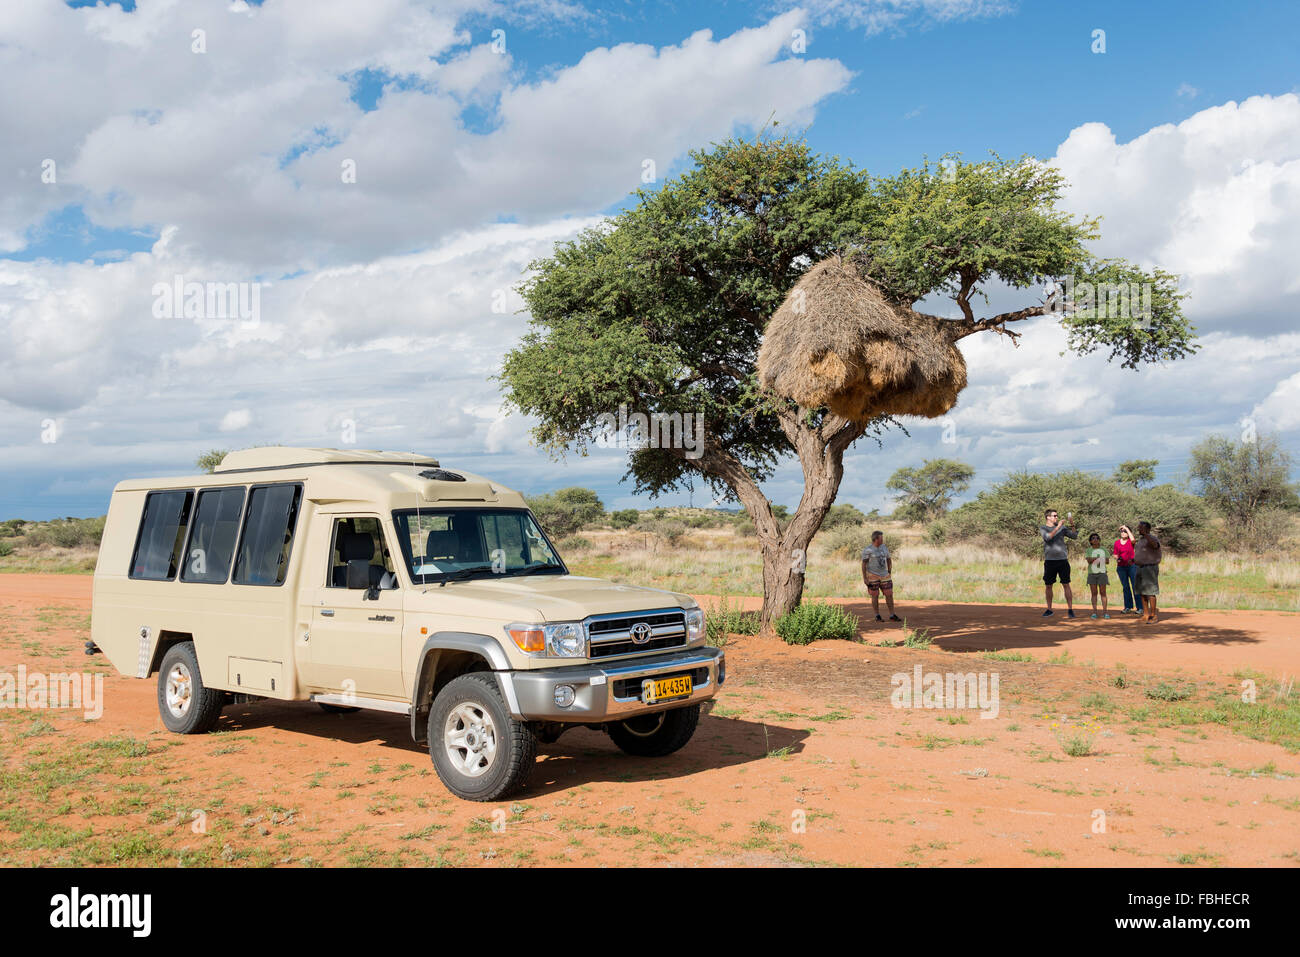 Safari tour group at sociable weaver nest in Acacia tree, Namib Naukluft Park, Solitaire, Namib Desert, Republic - Stock Image